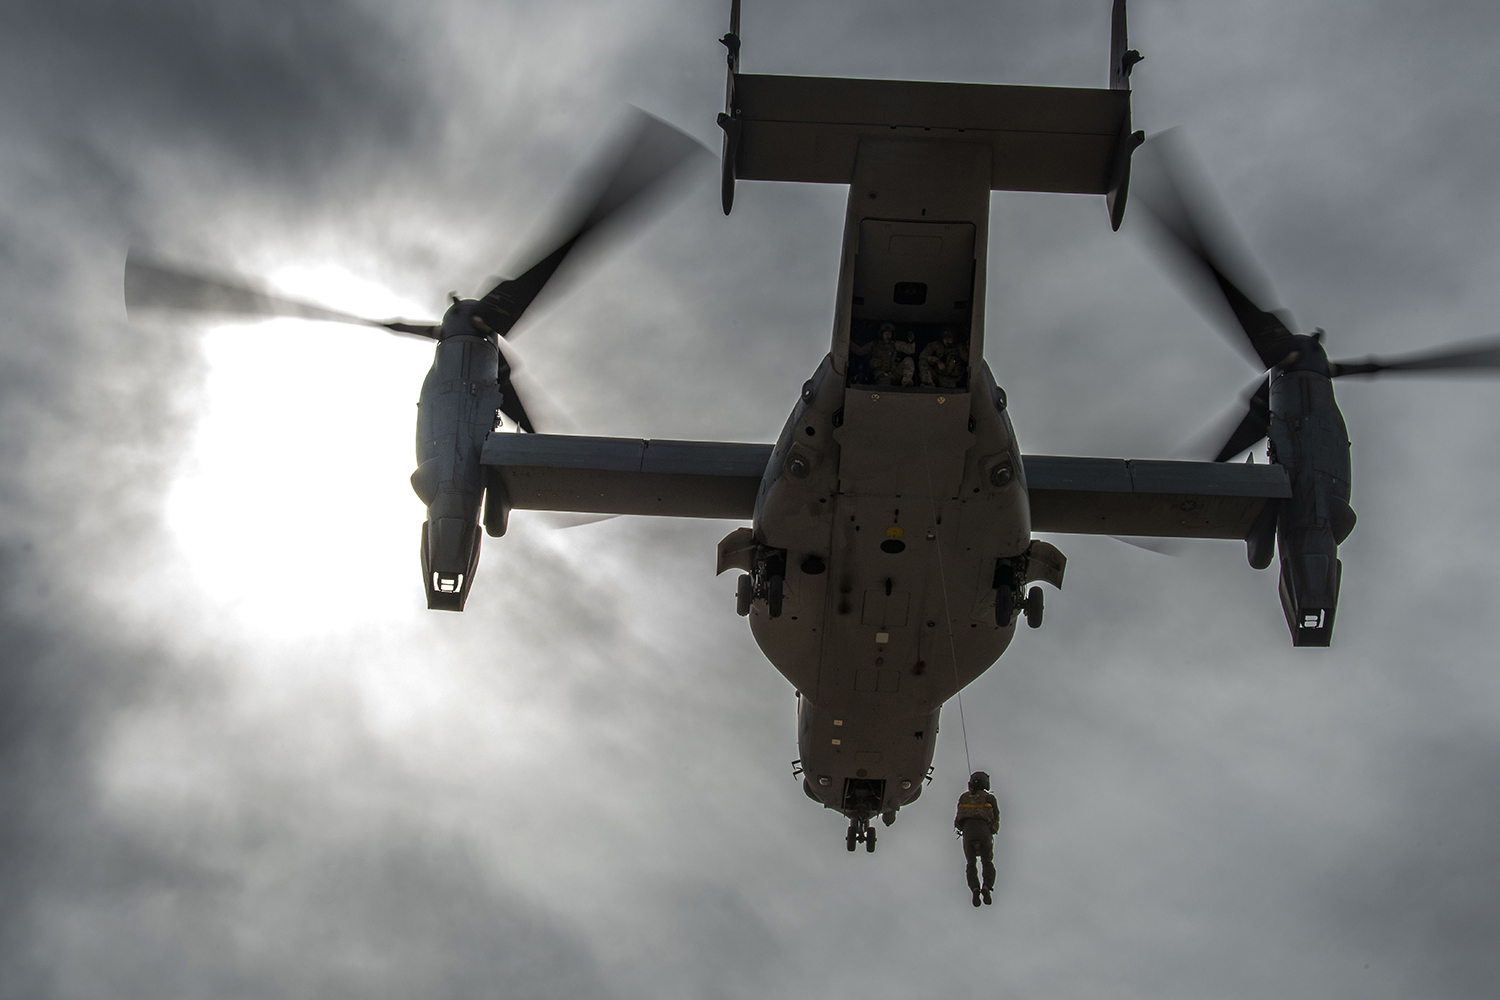 A CV-22 Osprey, assigned to the 20th Special Operations Squadron, hoists up a simulated survivor during combat search and rescue training at Cannon Air Force Base, N.M., March 7, 2019. (Staff Sgt. Luke Kitterman/Air Force)